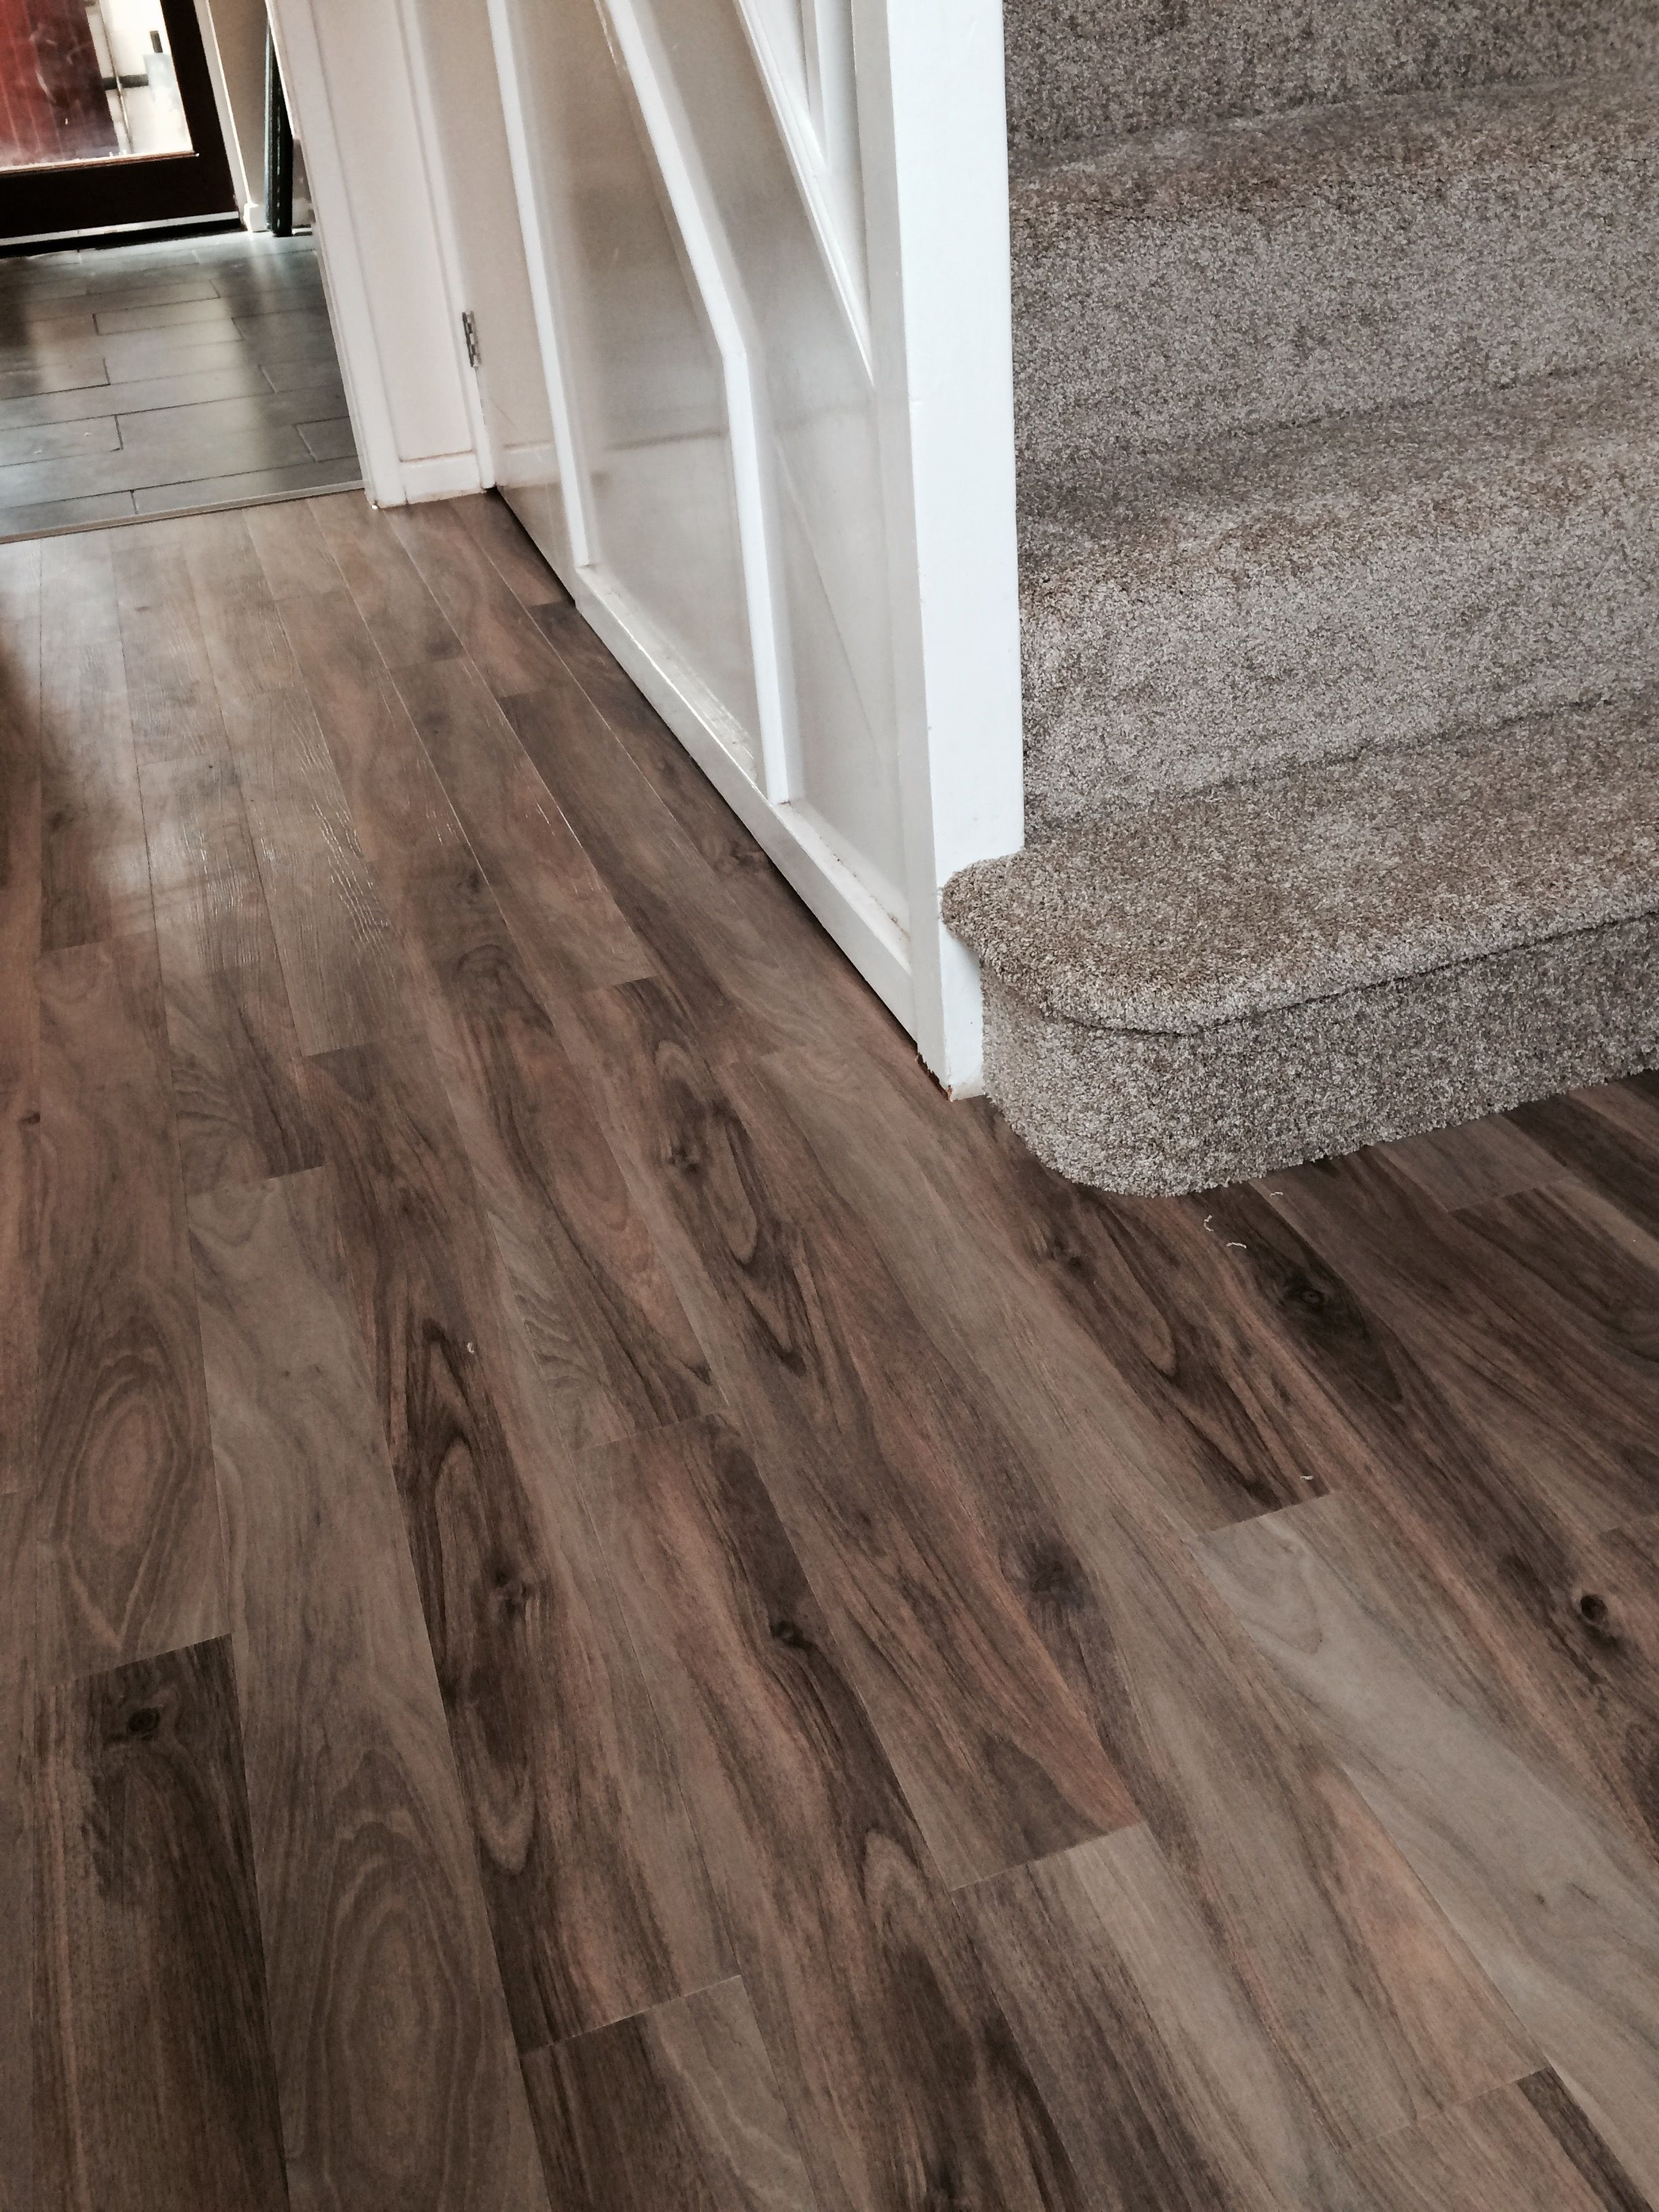 The Karndean Opus Weathered Elm Matched Up To One Of Our